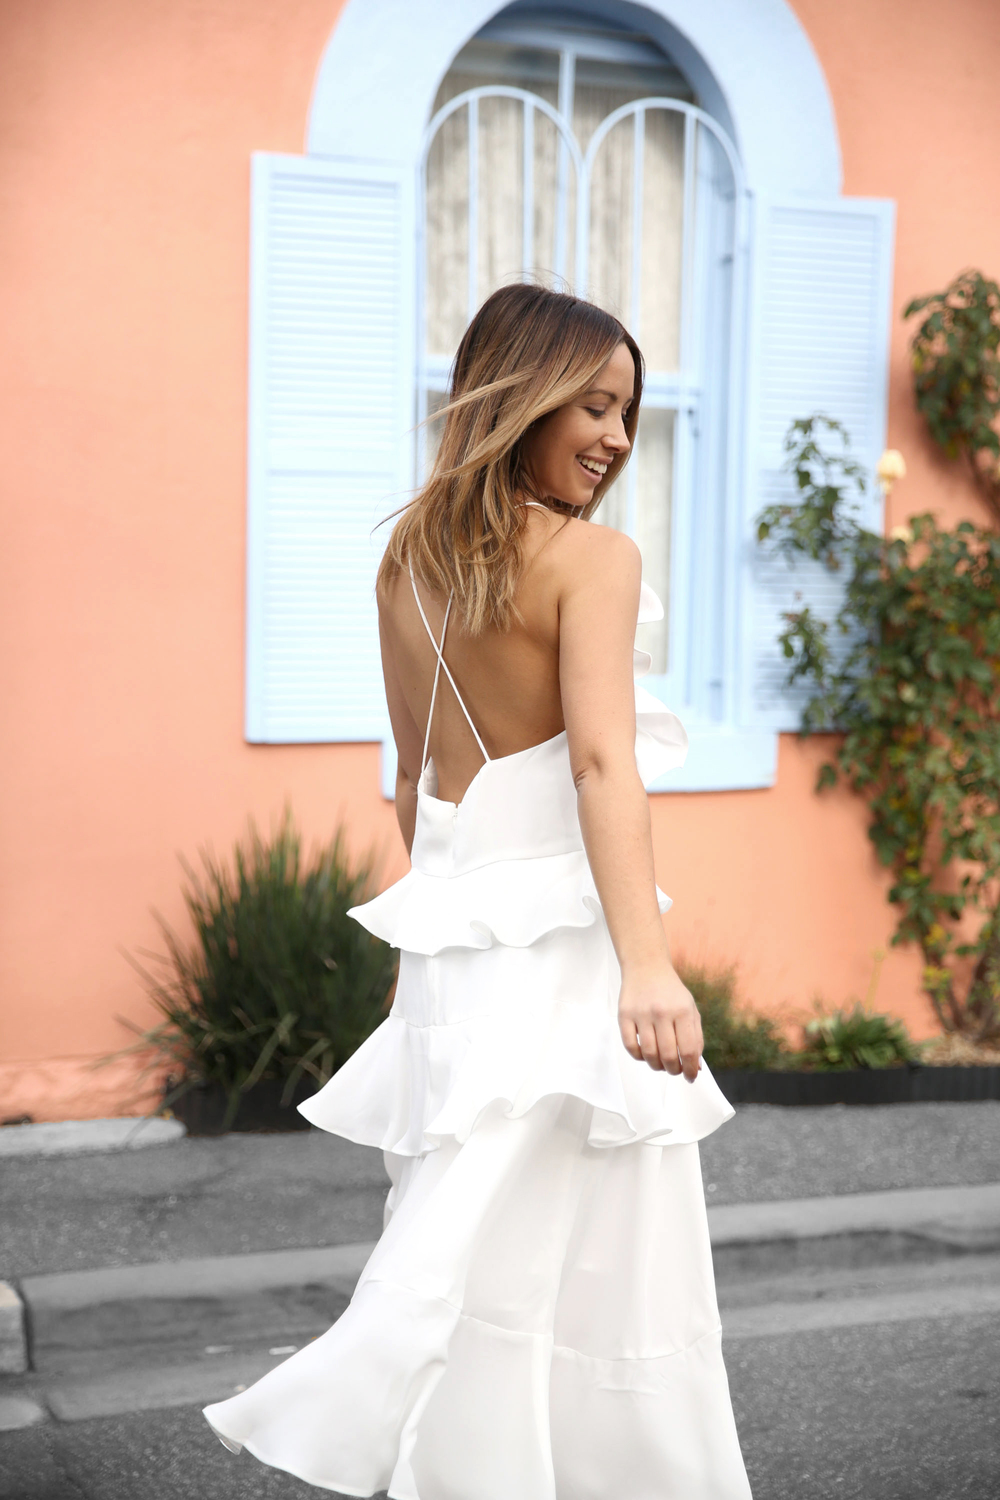 FriendInFashion_WhiteDress_StreetStyle_Vogue_11.jpg